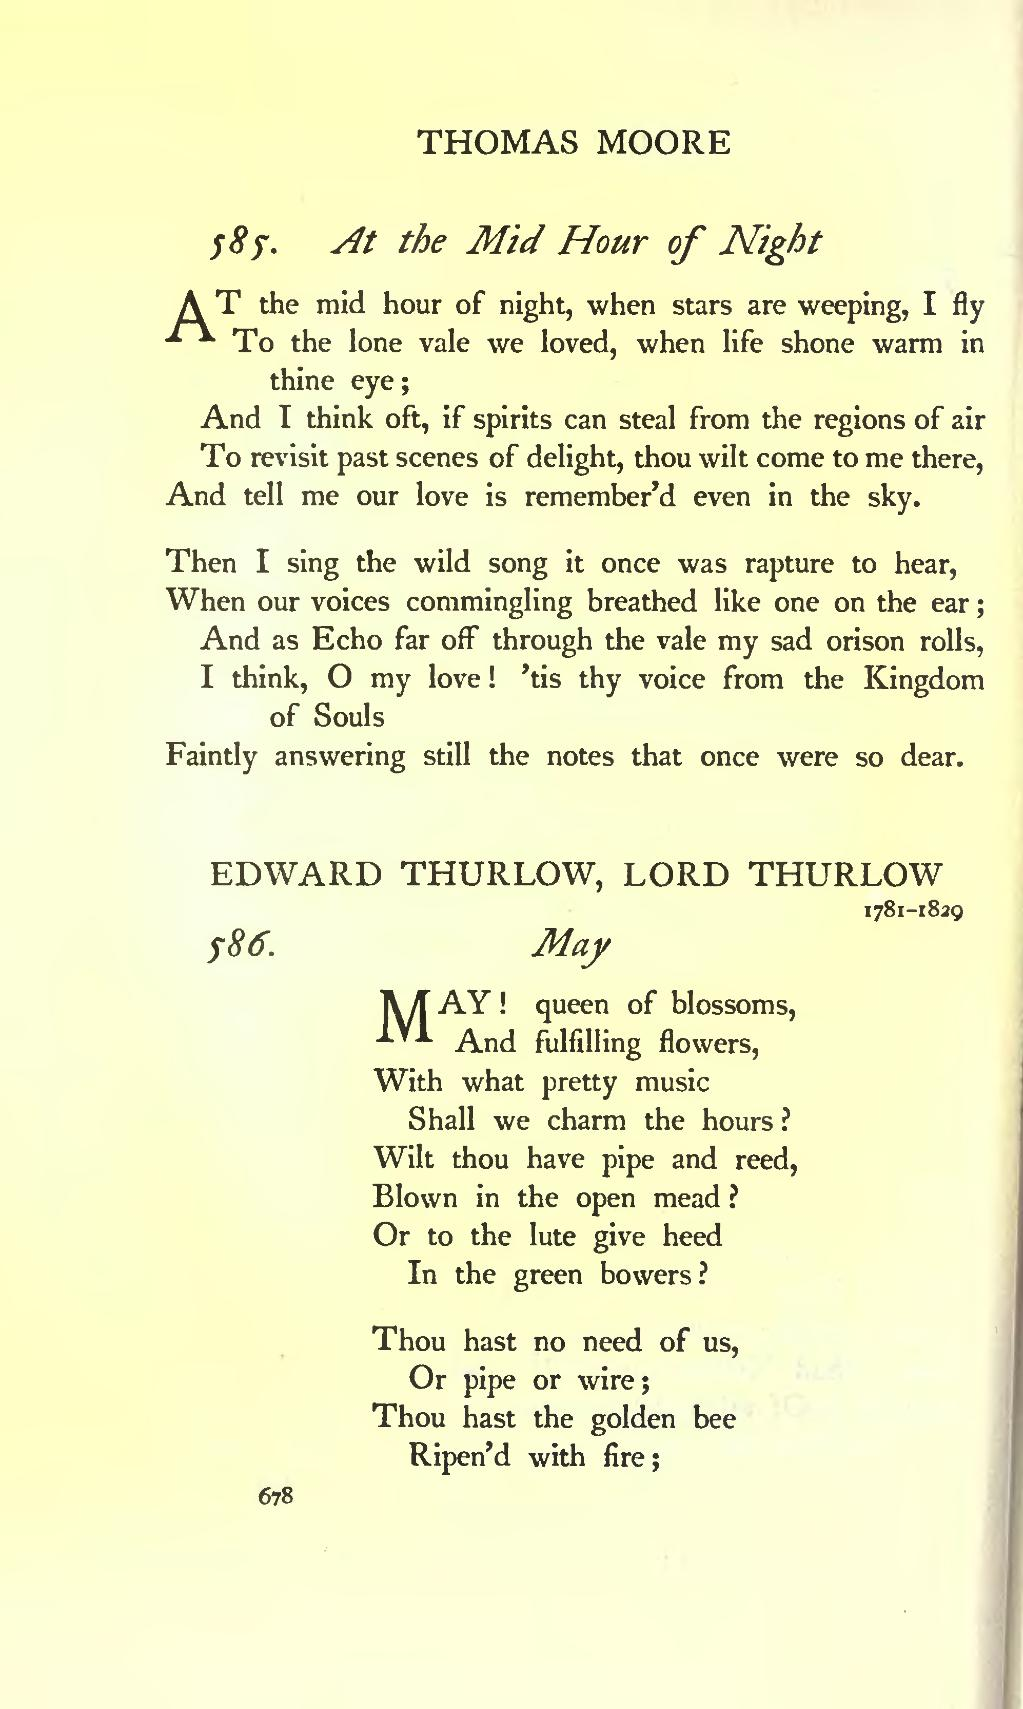 at the mid hour of night thomas moore